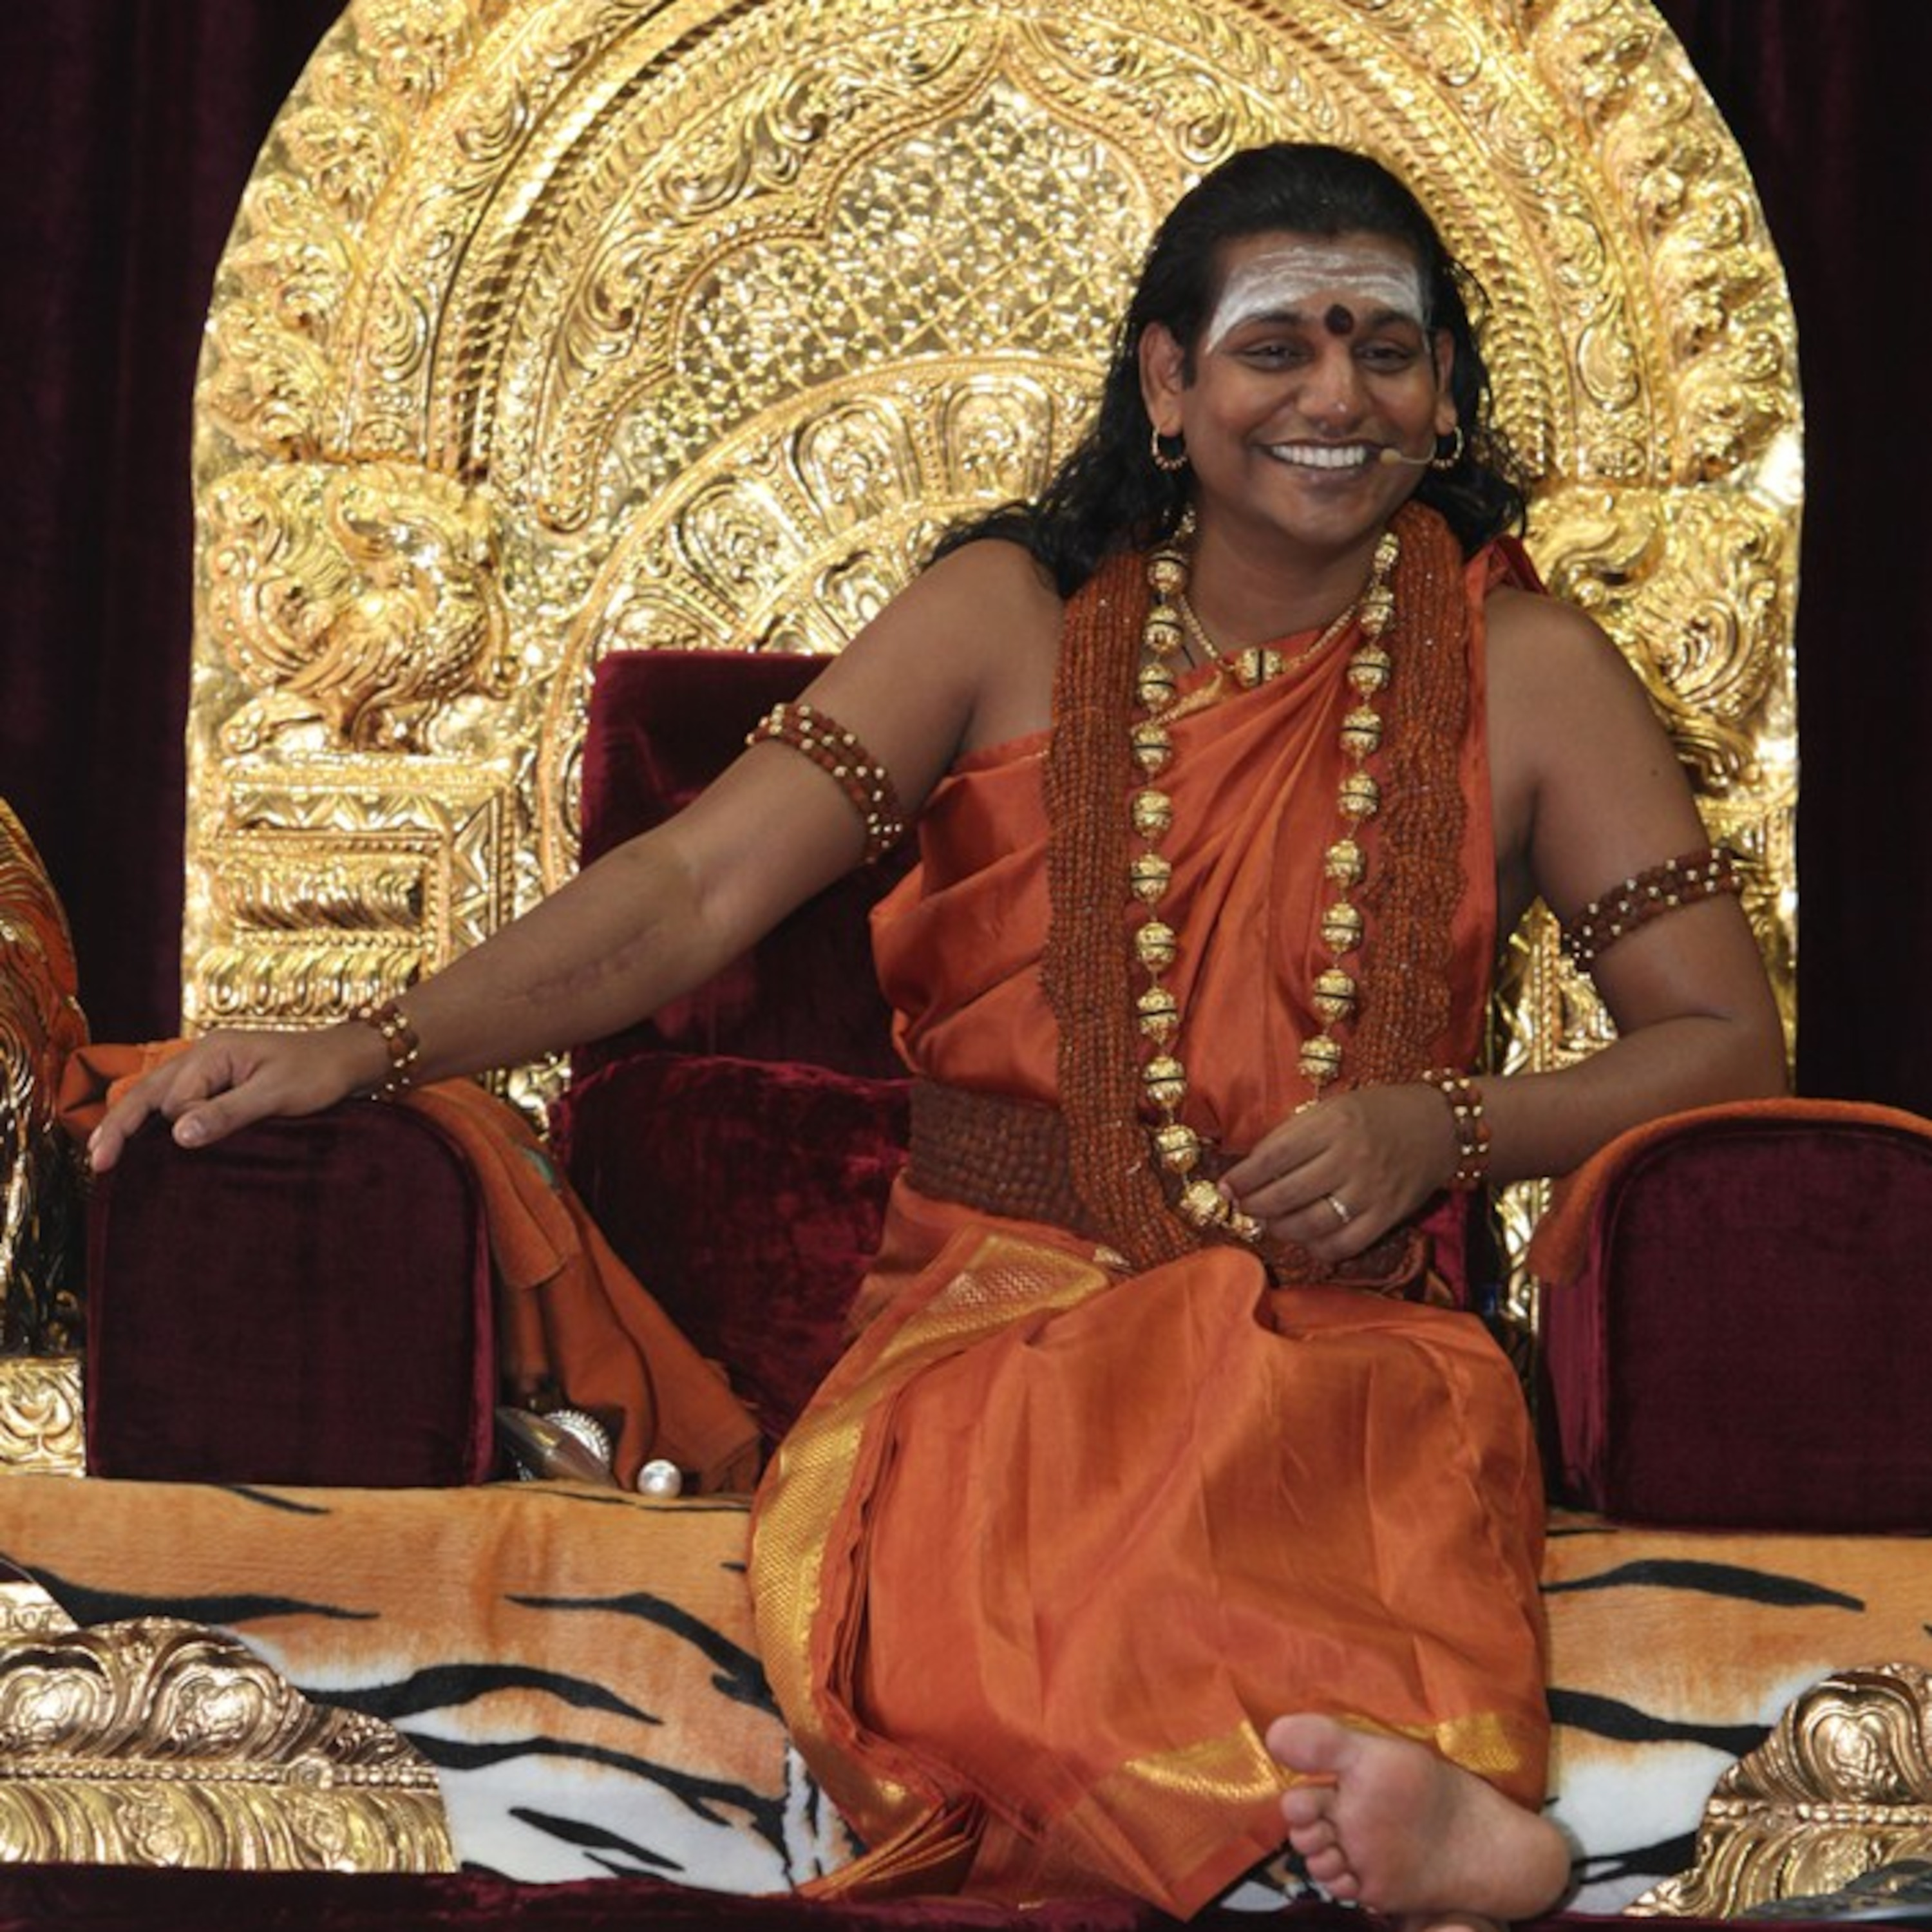 Episode 109 - Nithyananda Podcast - A Life Without Fear is Possible, Part I